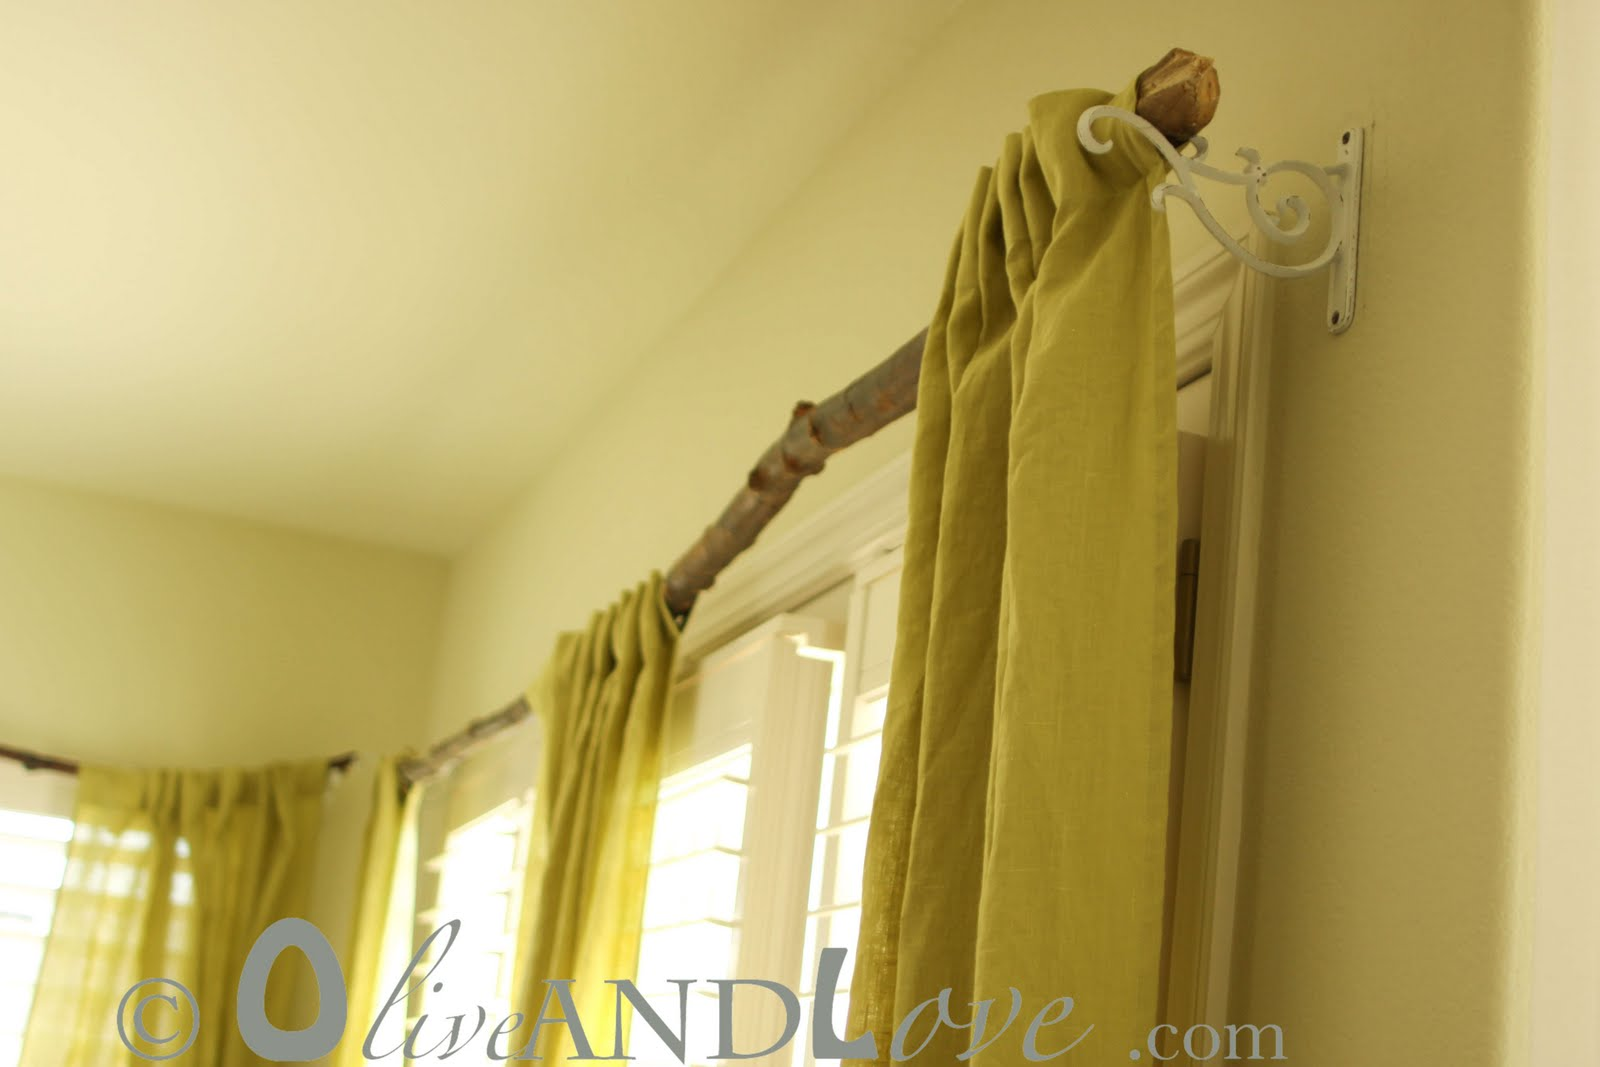 Five Creative Curtain Projects From The Diy Files The